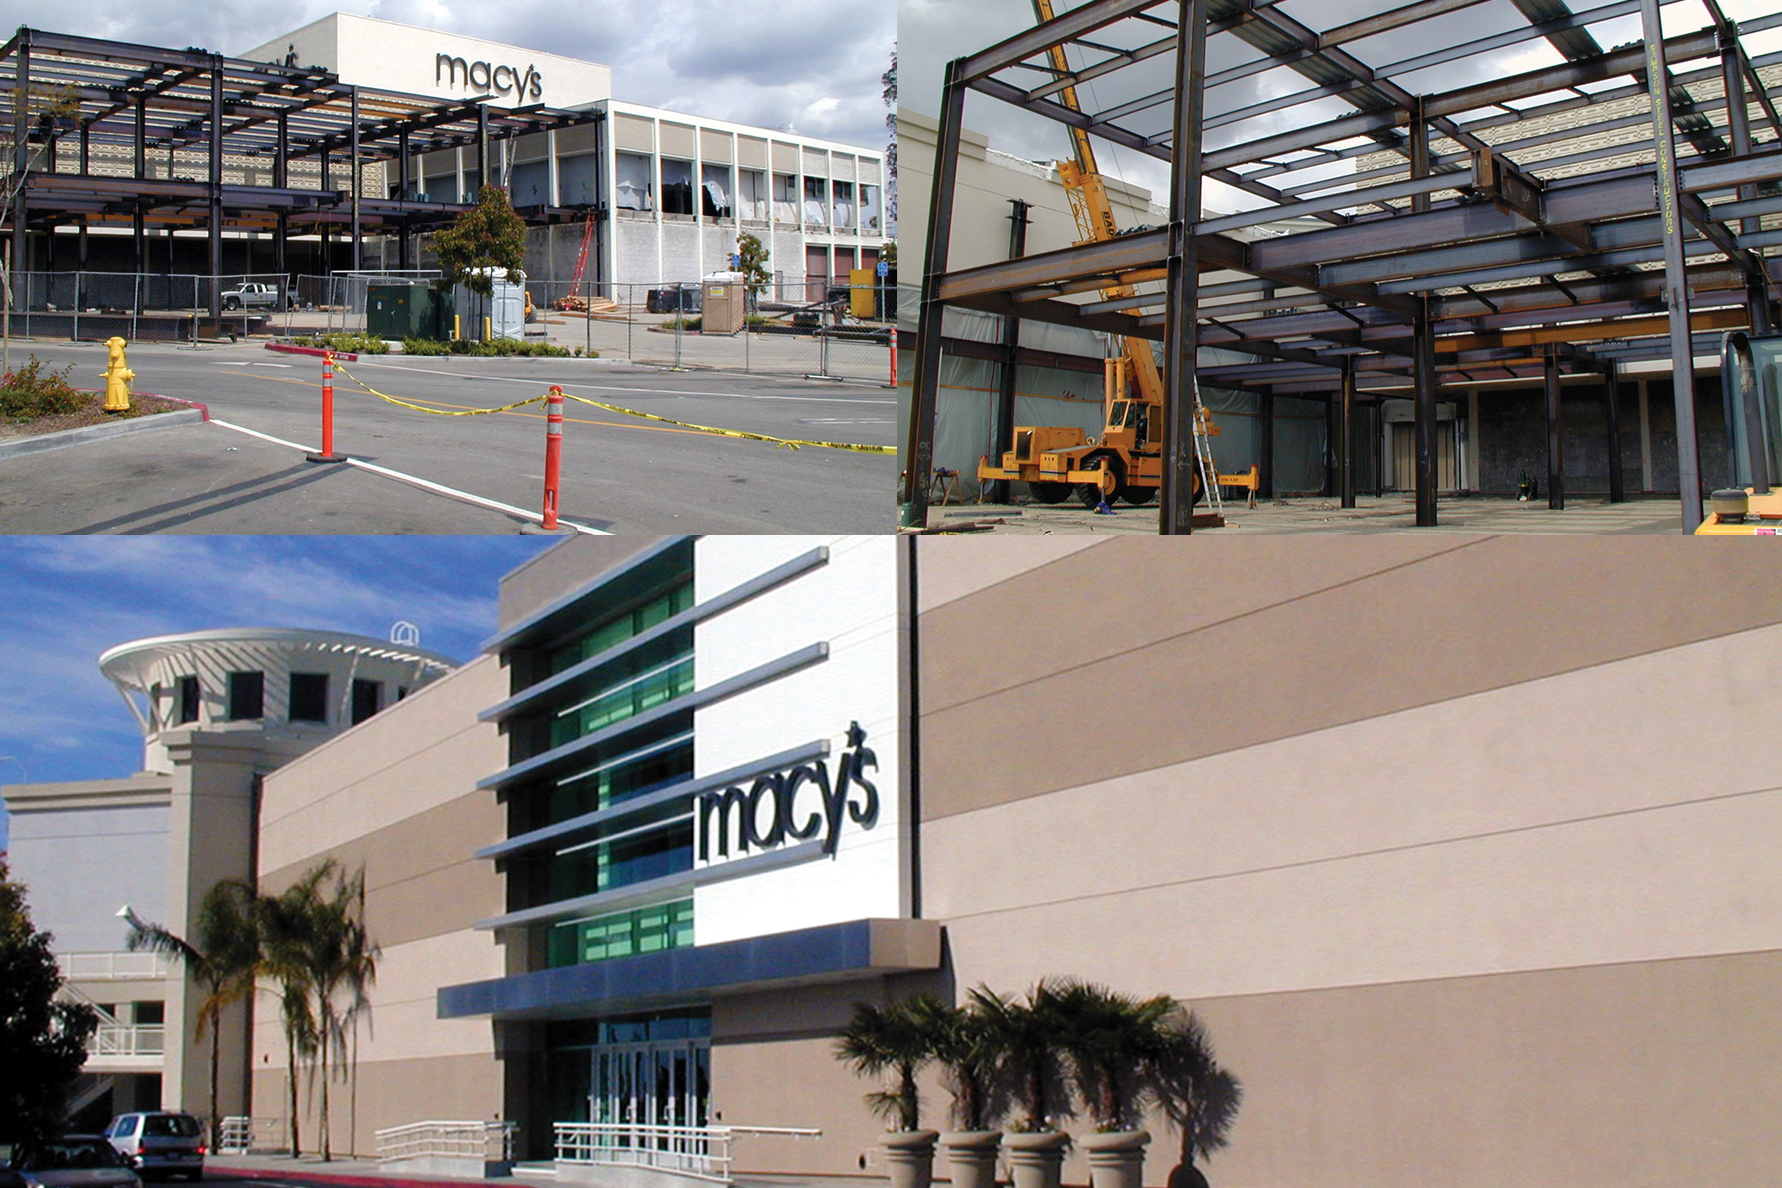 Macy's Pacific View Mall - Complete interior and exterior remodel of the occupied store including a 30,000 square foot expansion.